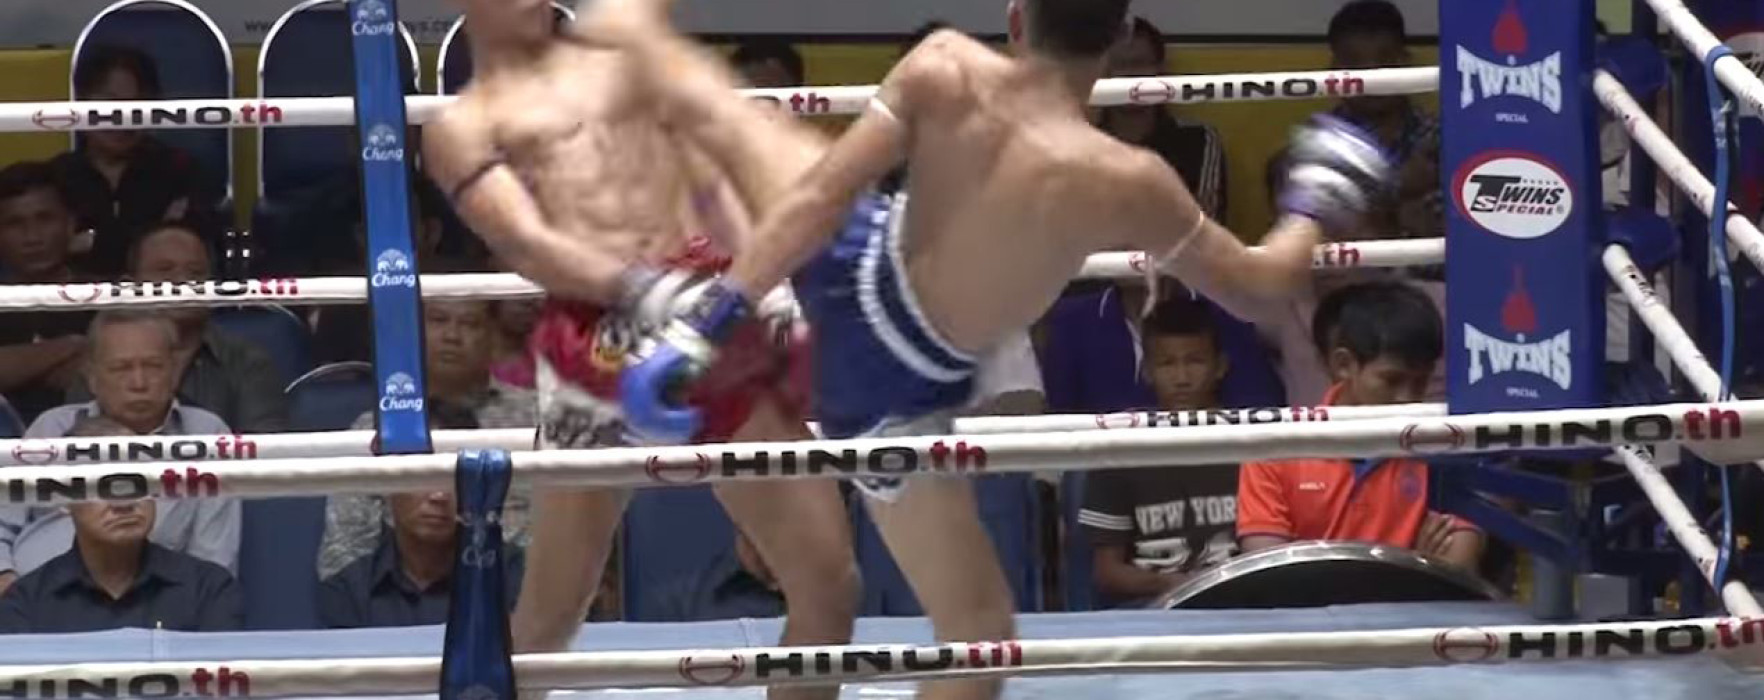 Video: Yodvicha vs Sensatarn & Kongsak vs Chujaroe – New Lumpinee 30/06/2015